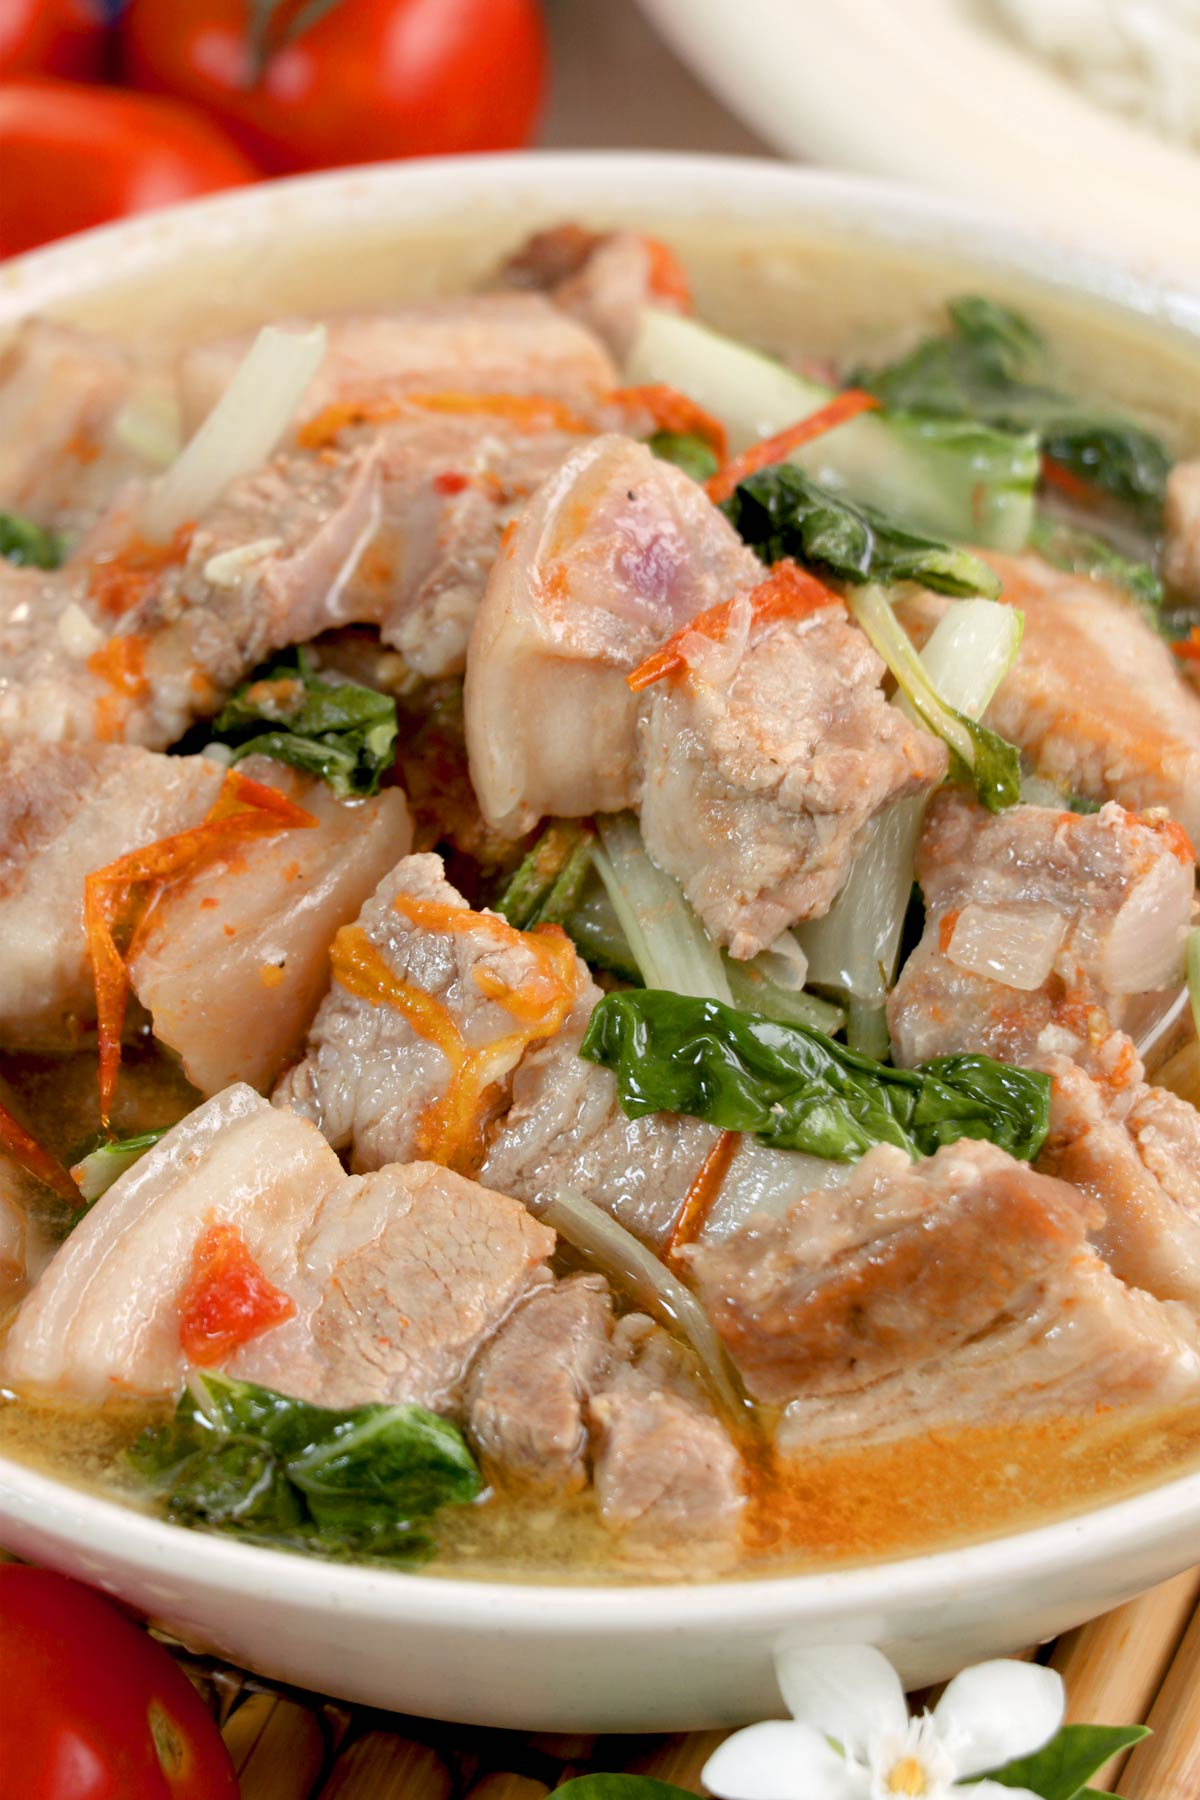 Pork soup with tomatoes and bok choy.